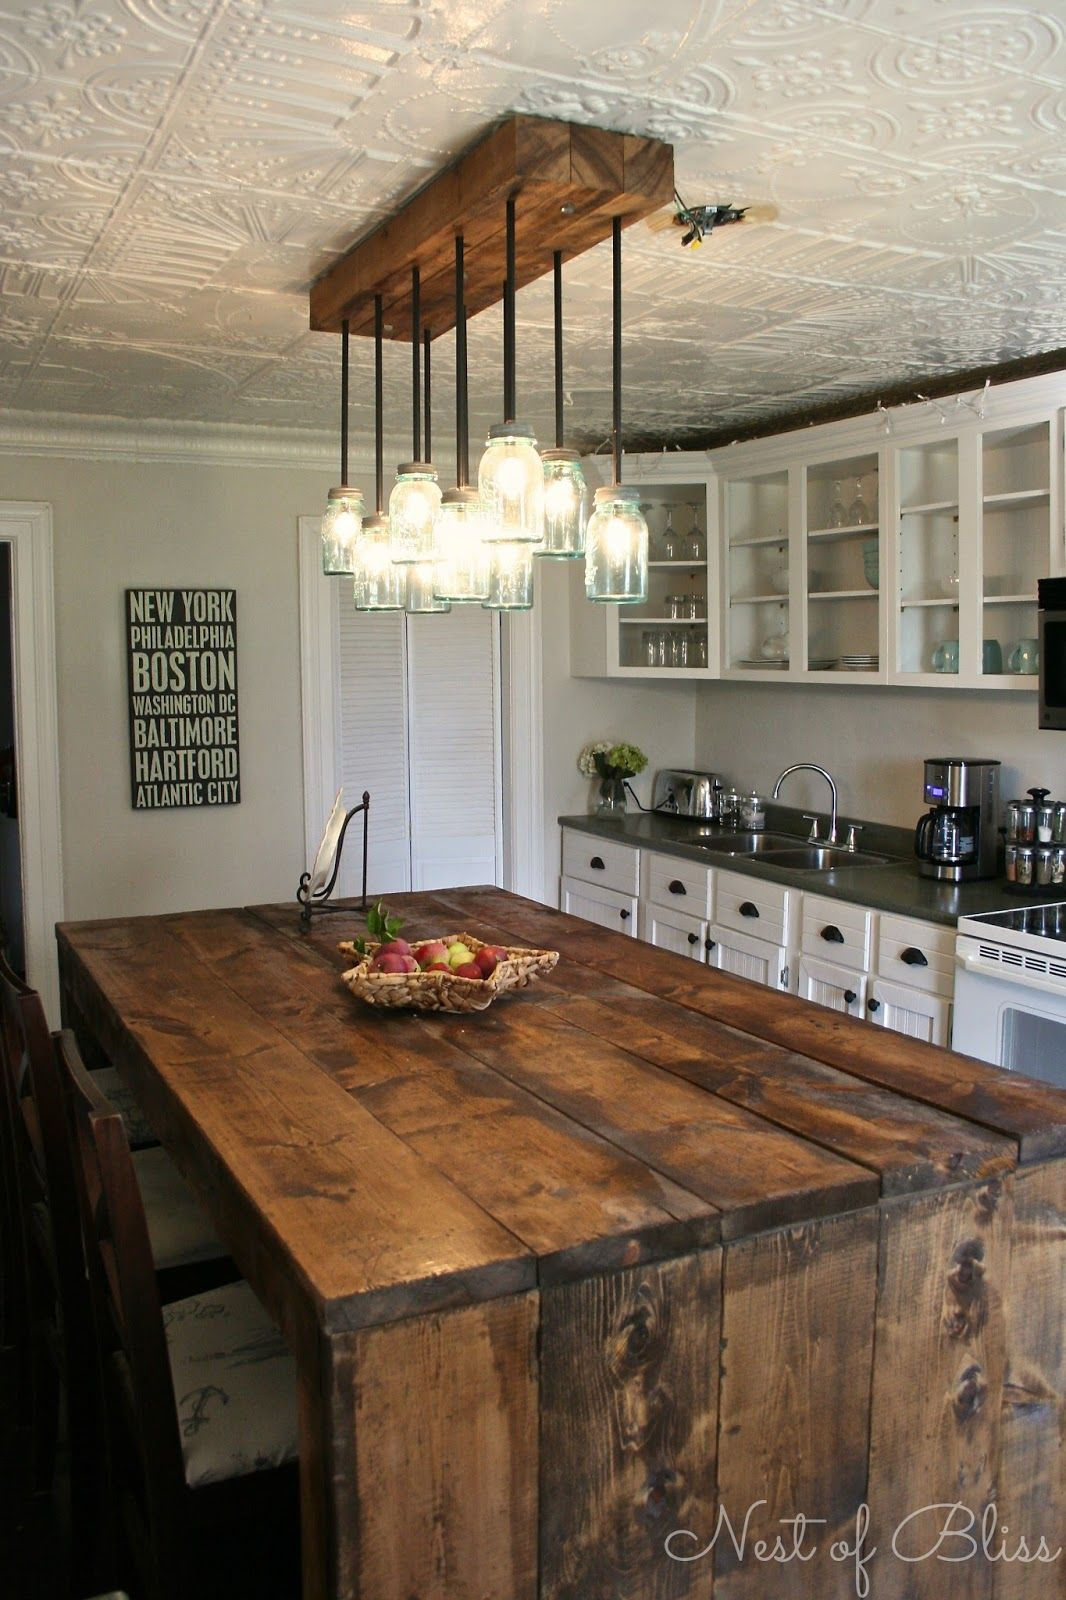 23 Rustic Country Kitchen Design Ideas to Jump Start Your Next ... on cute kitchen designs, french kitchen designs, old kitchen designs, family kitchen designs, office kitchen designs, homemade bathroom, japanese kitchen designs, amazing kitchen designs, black kitchen designs, natural kitchen designs, school kitchen designs, italian kitchen designs, sexy kitchen designs, party kitchen designs, cartoon kitchen designs, homemade outdoor kitchens, cooking kitchen designs, home kitchen designs, funny kitchen designs, young kitchen designs,